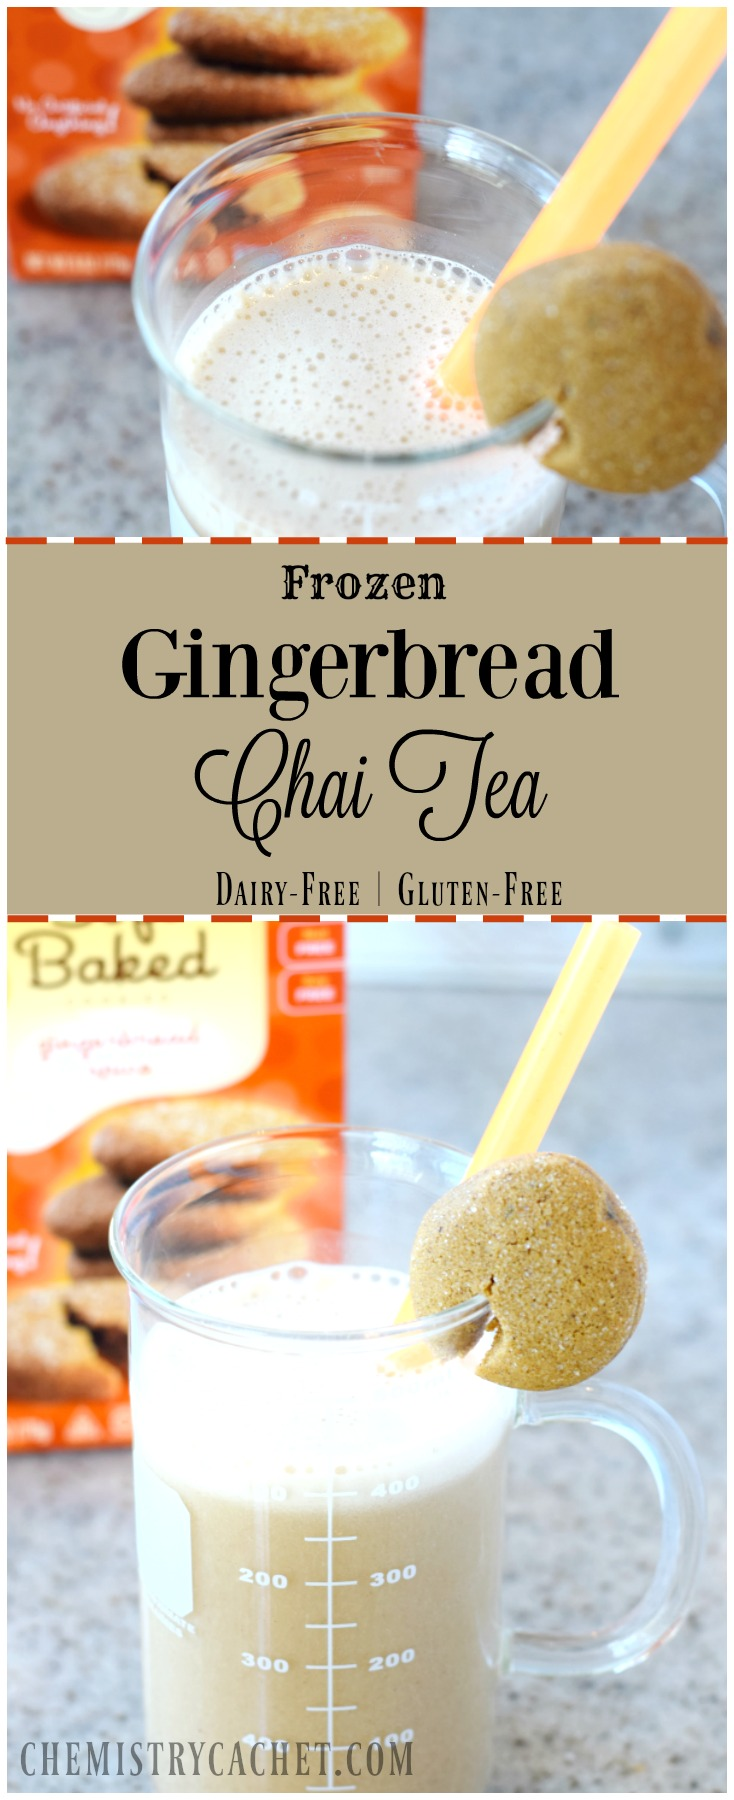 Frozen Gingerbread Chai Tea Recipe. Gluten-free AND dairy-free for everyone to enjoy! on chemistrycachet.com